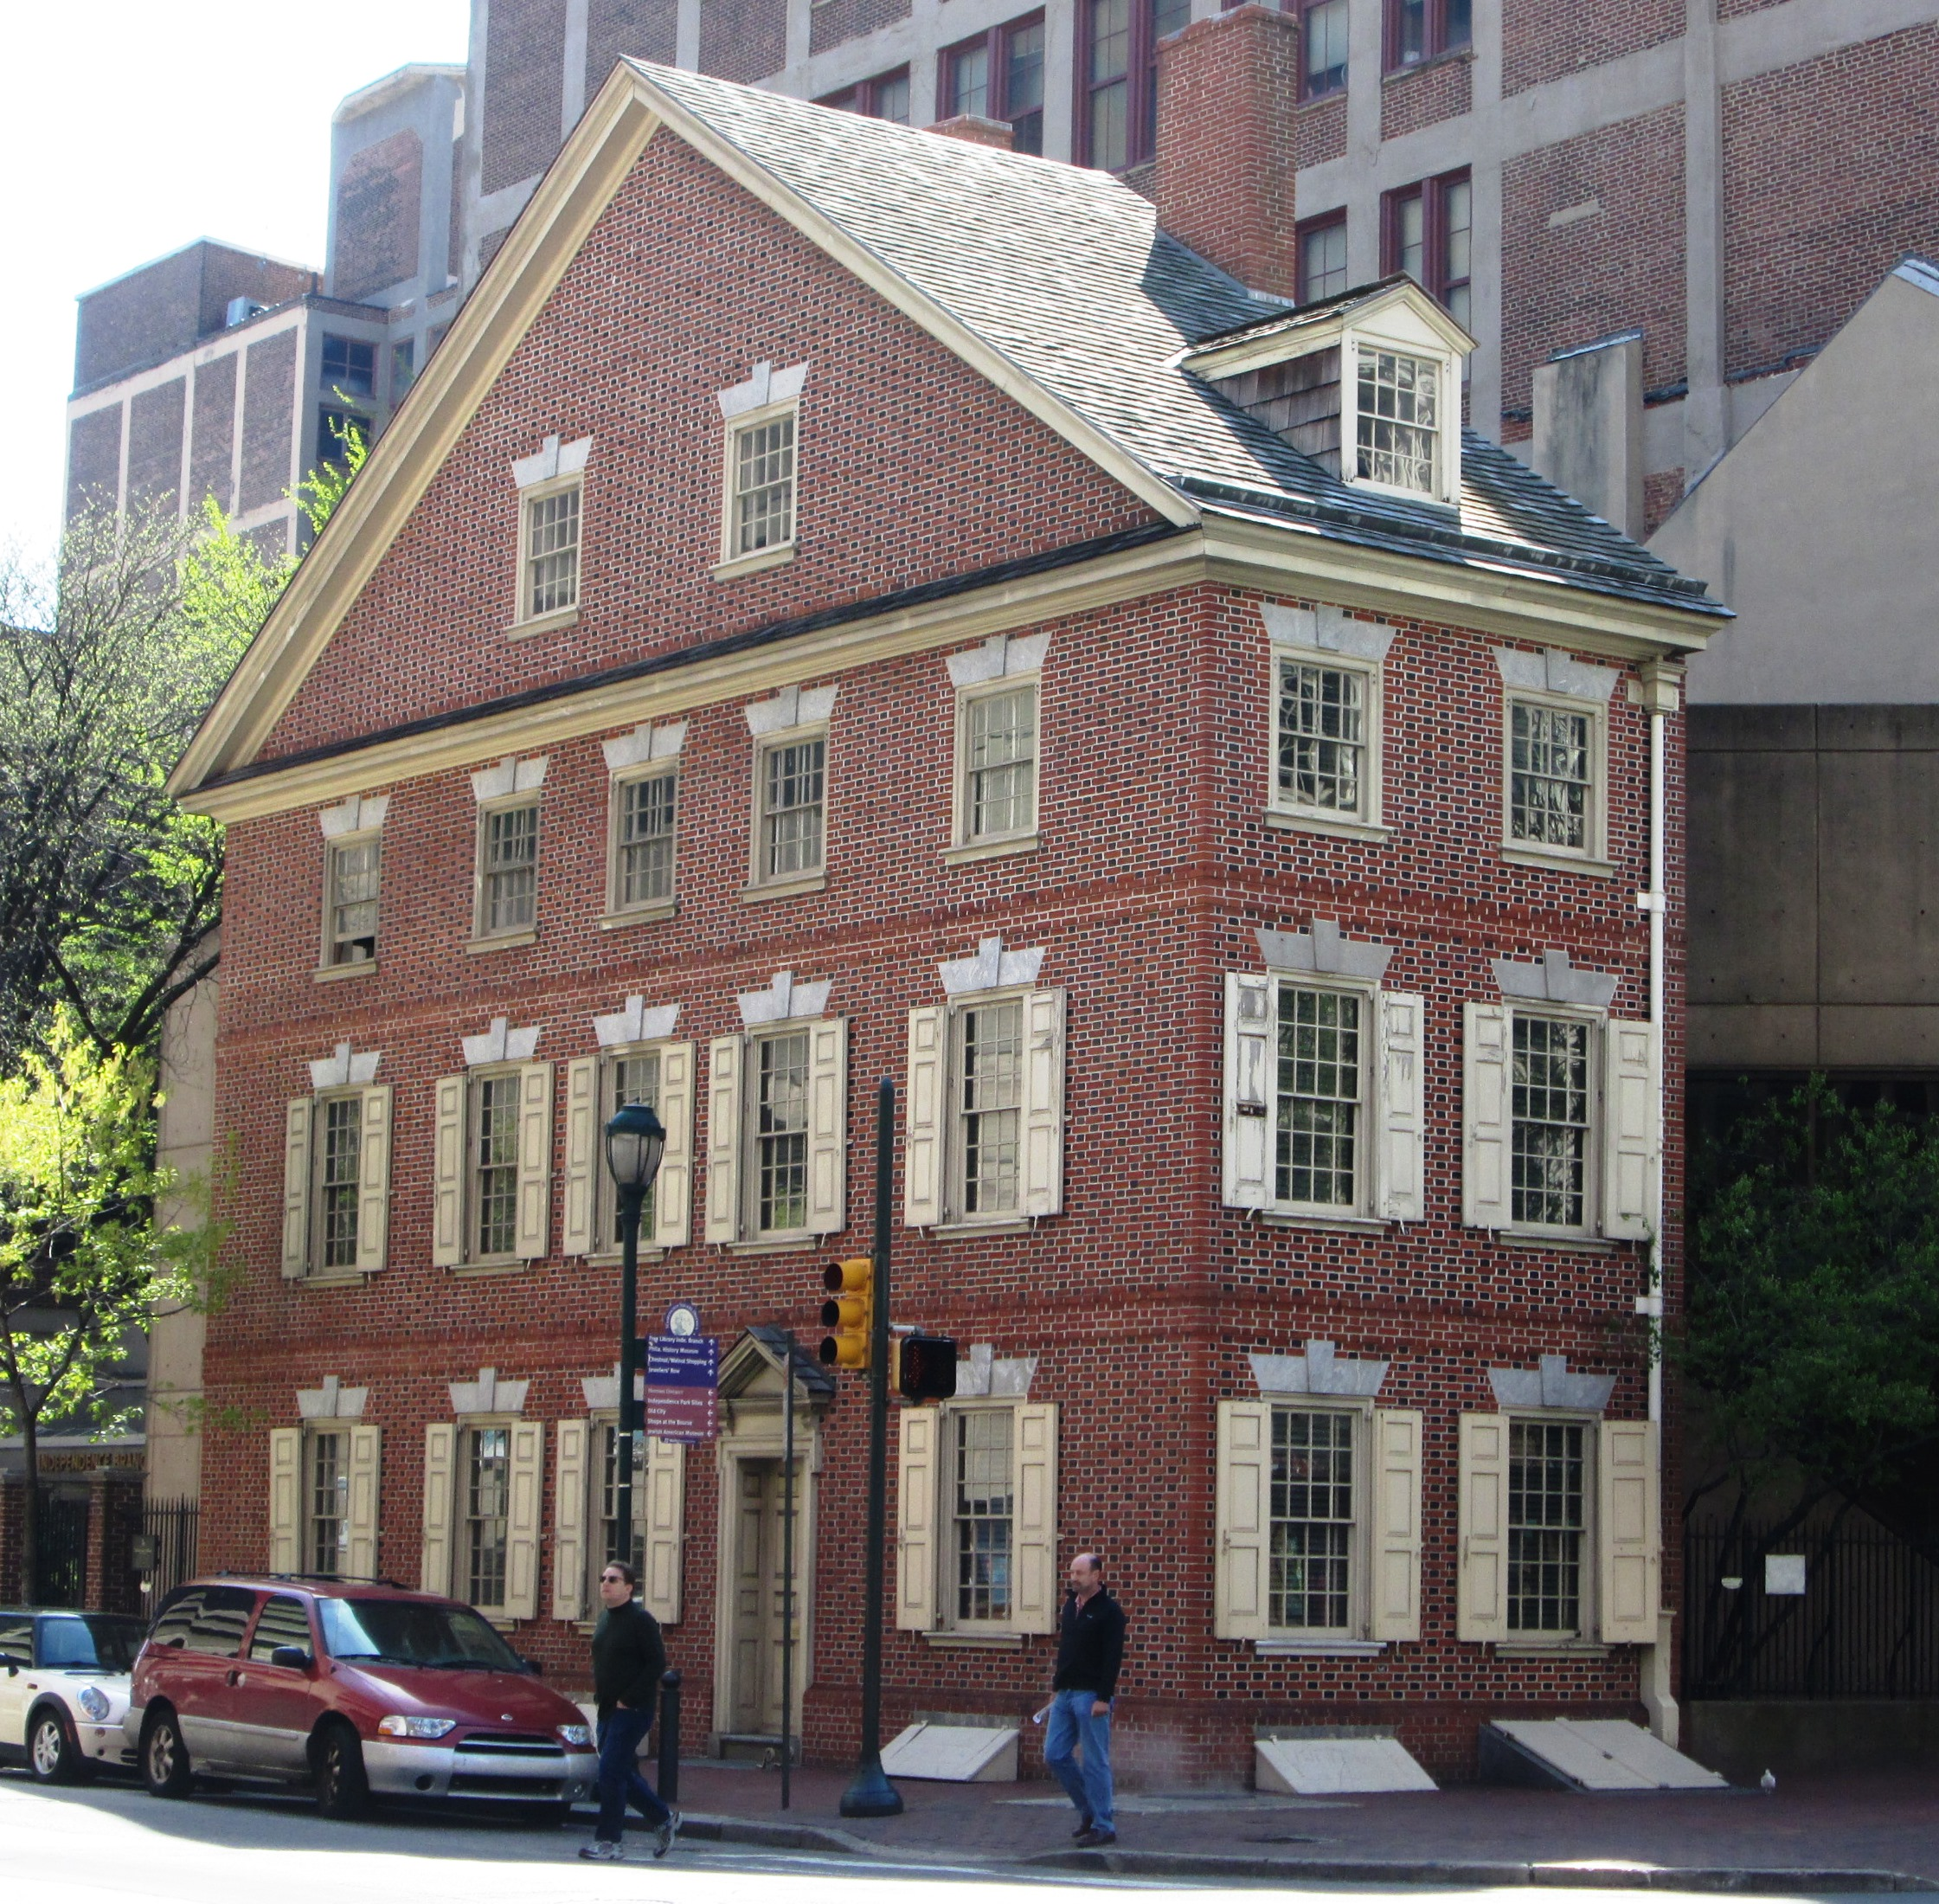 Declaration House or the Graff House at 700 Market Street at the corner of S. 7th Street in Center City, Philadelphia, is the boarding house in which Thomas Jefferson wrote the Declaration of Independence. Originally built in 1775 by Joseph Graff, Jr., a bricklayer, the building was reconstructed in 1975, and is now part of Independence National Historical Park. Photo taken on April 21, 2013.